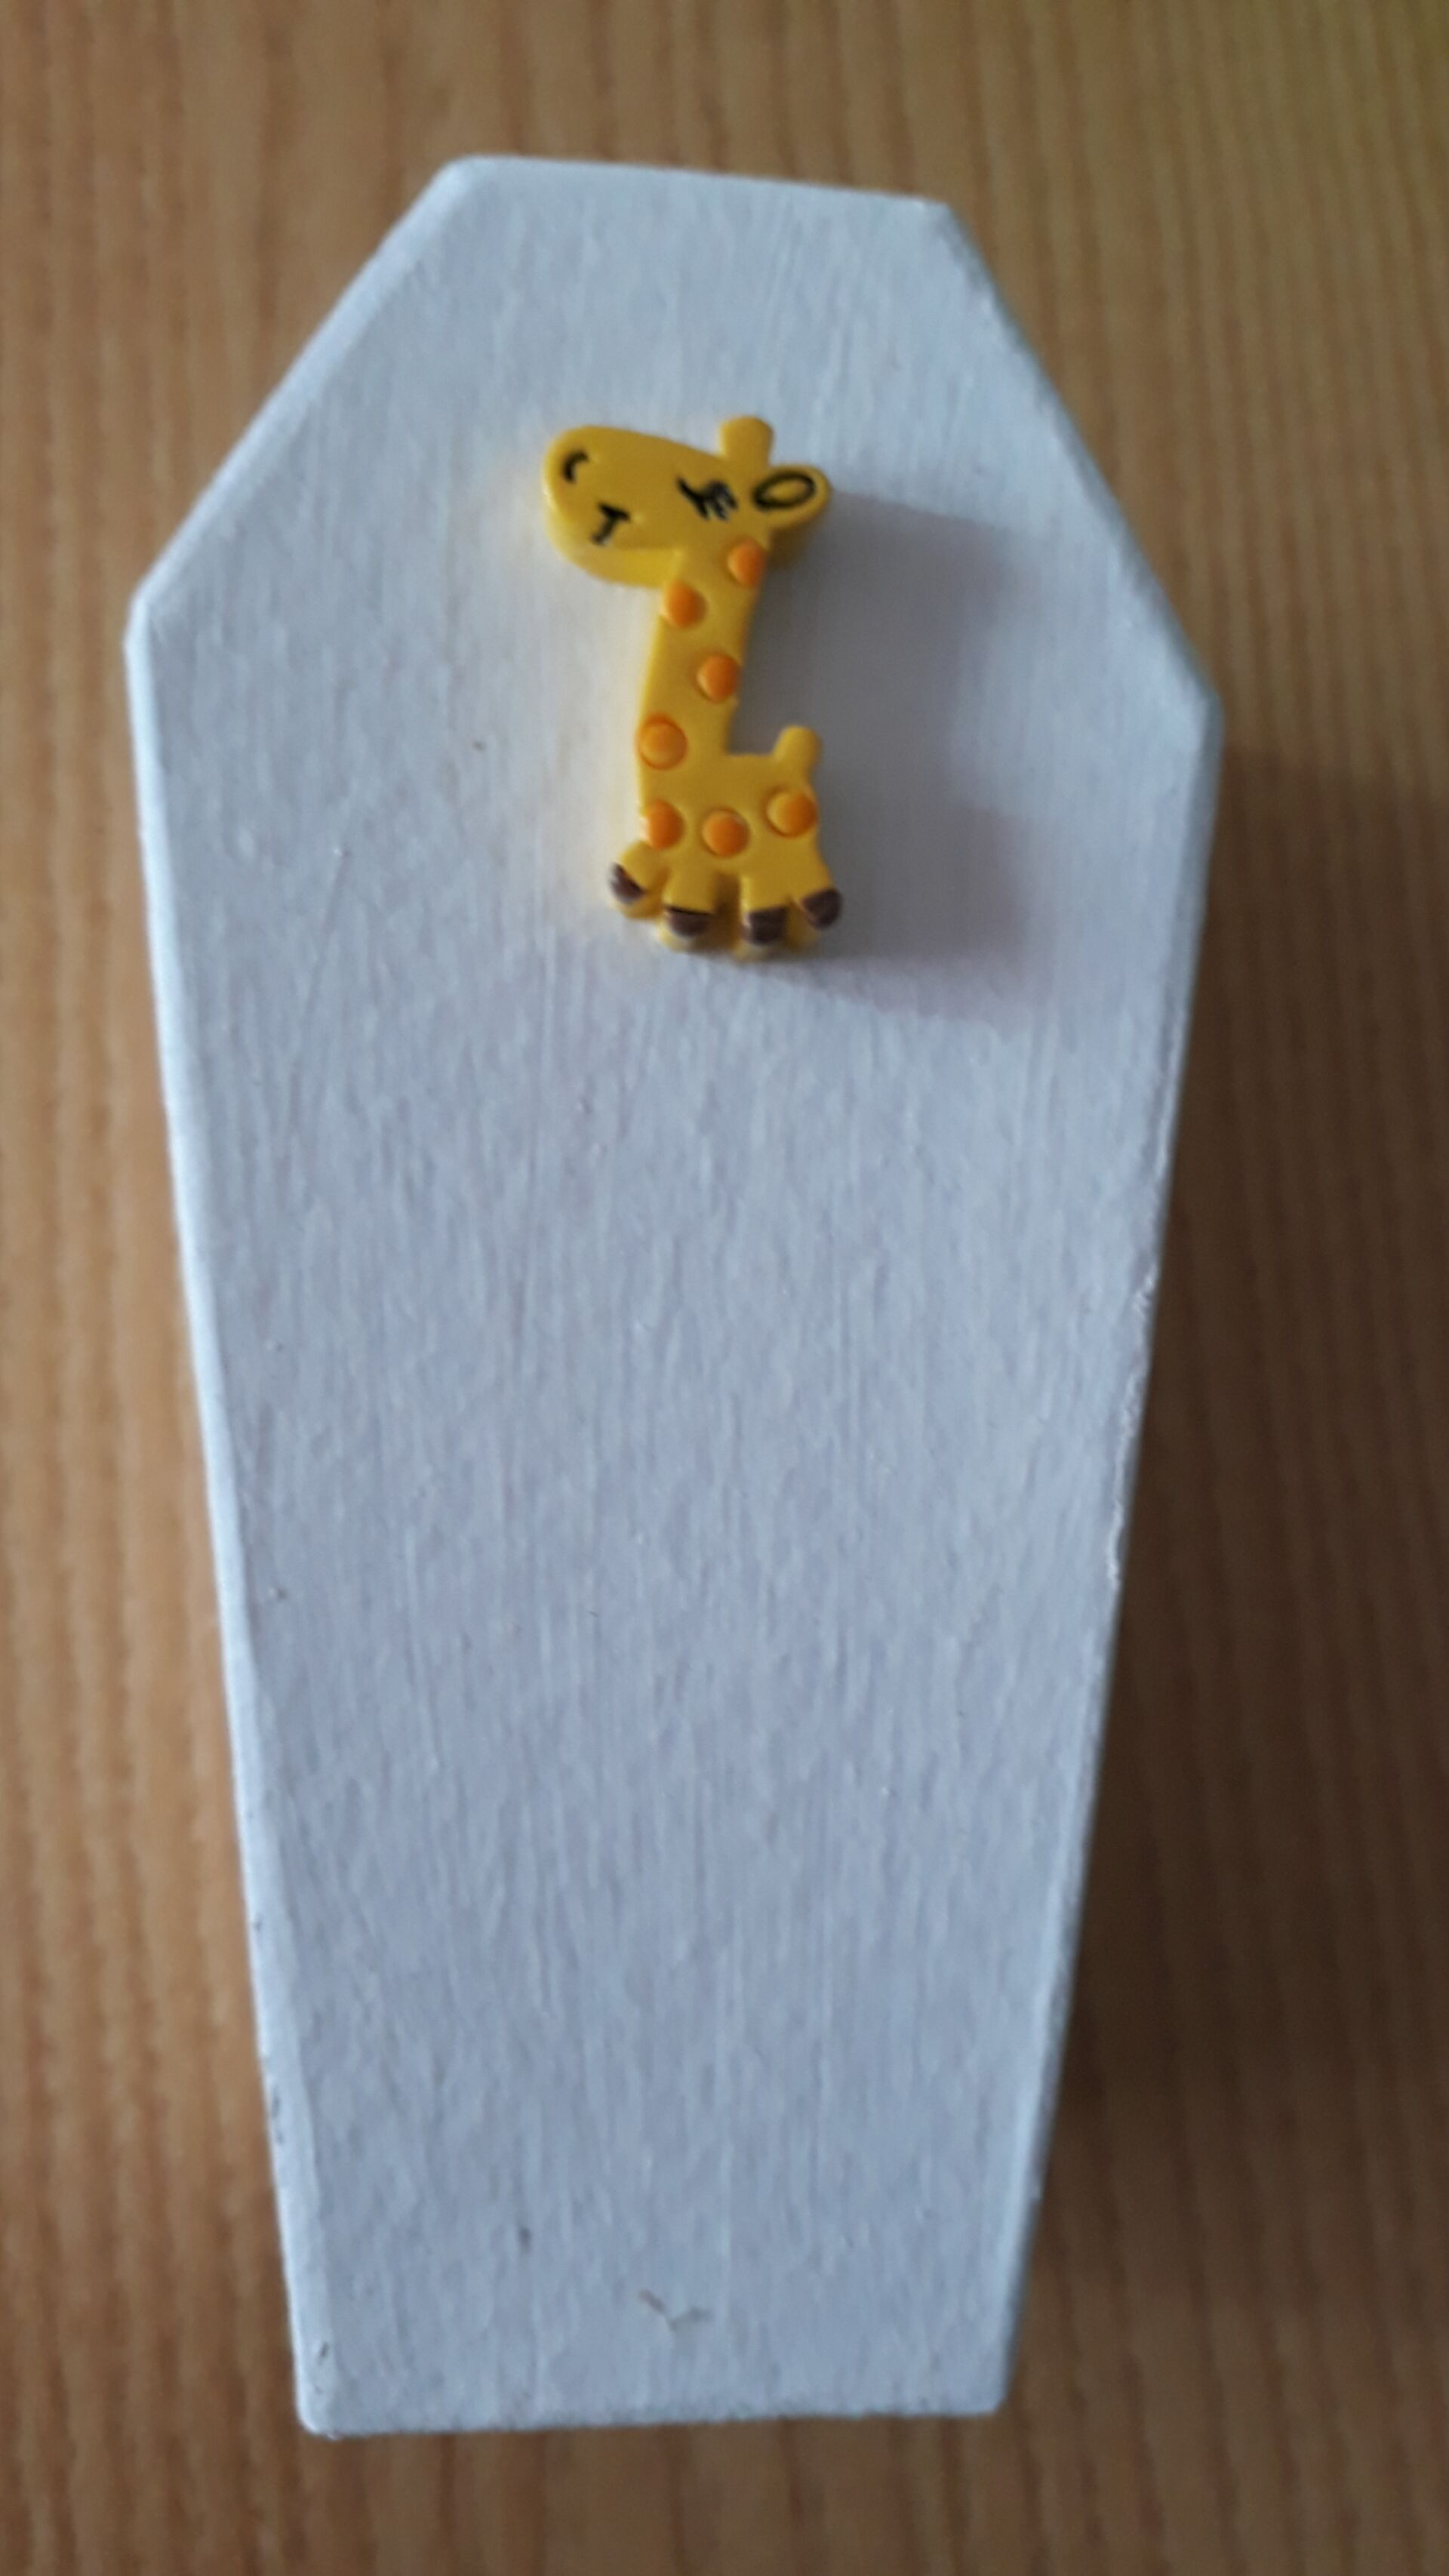 baby coffin miscarriage 0-10 weeks size GEE GEE GIRAFFE